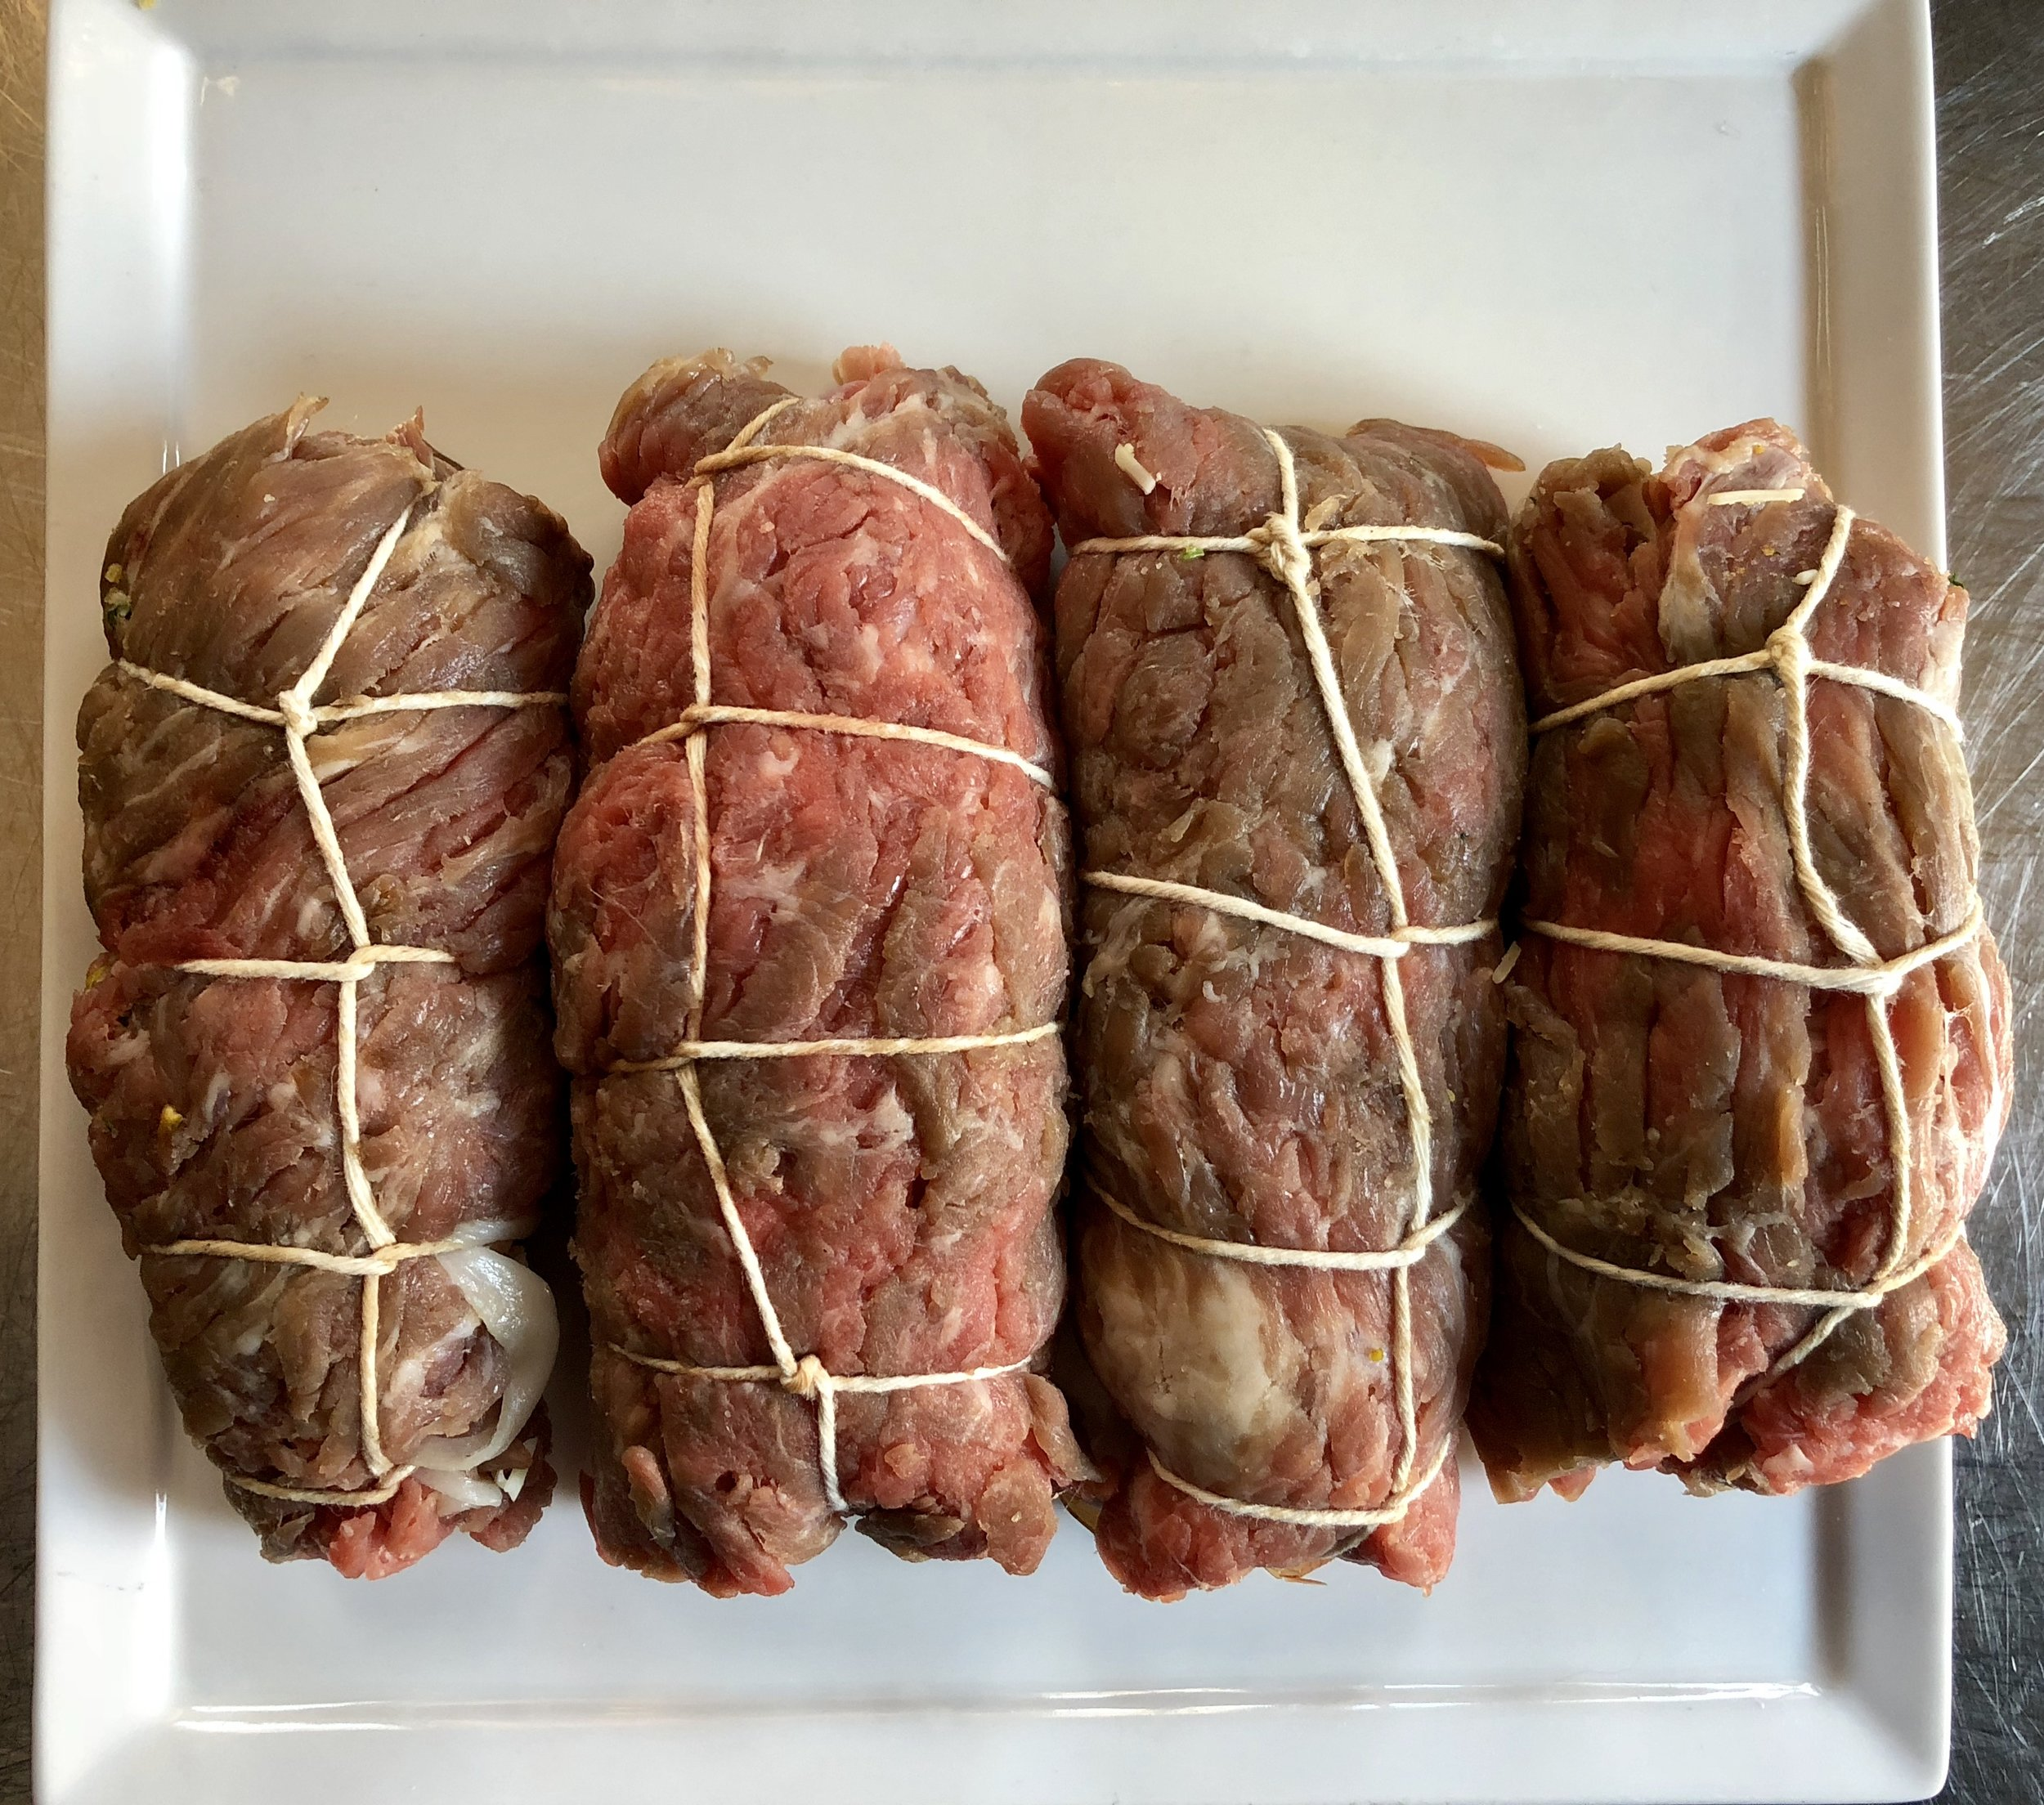 Rolled, tied, and ready to be seared.